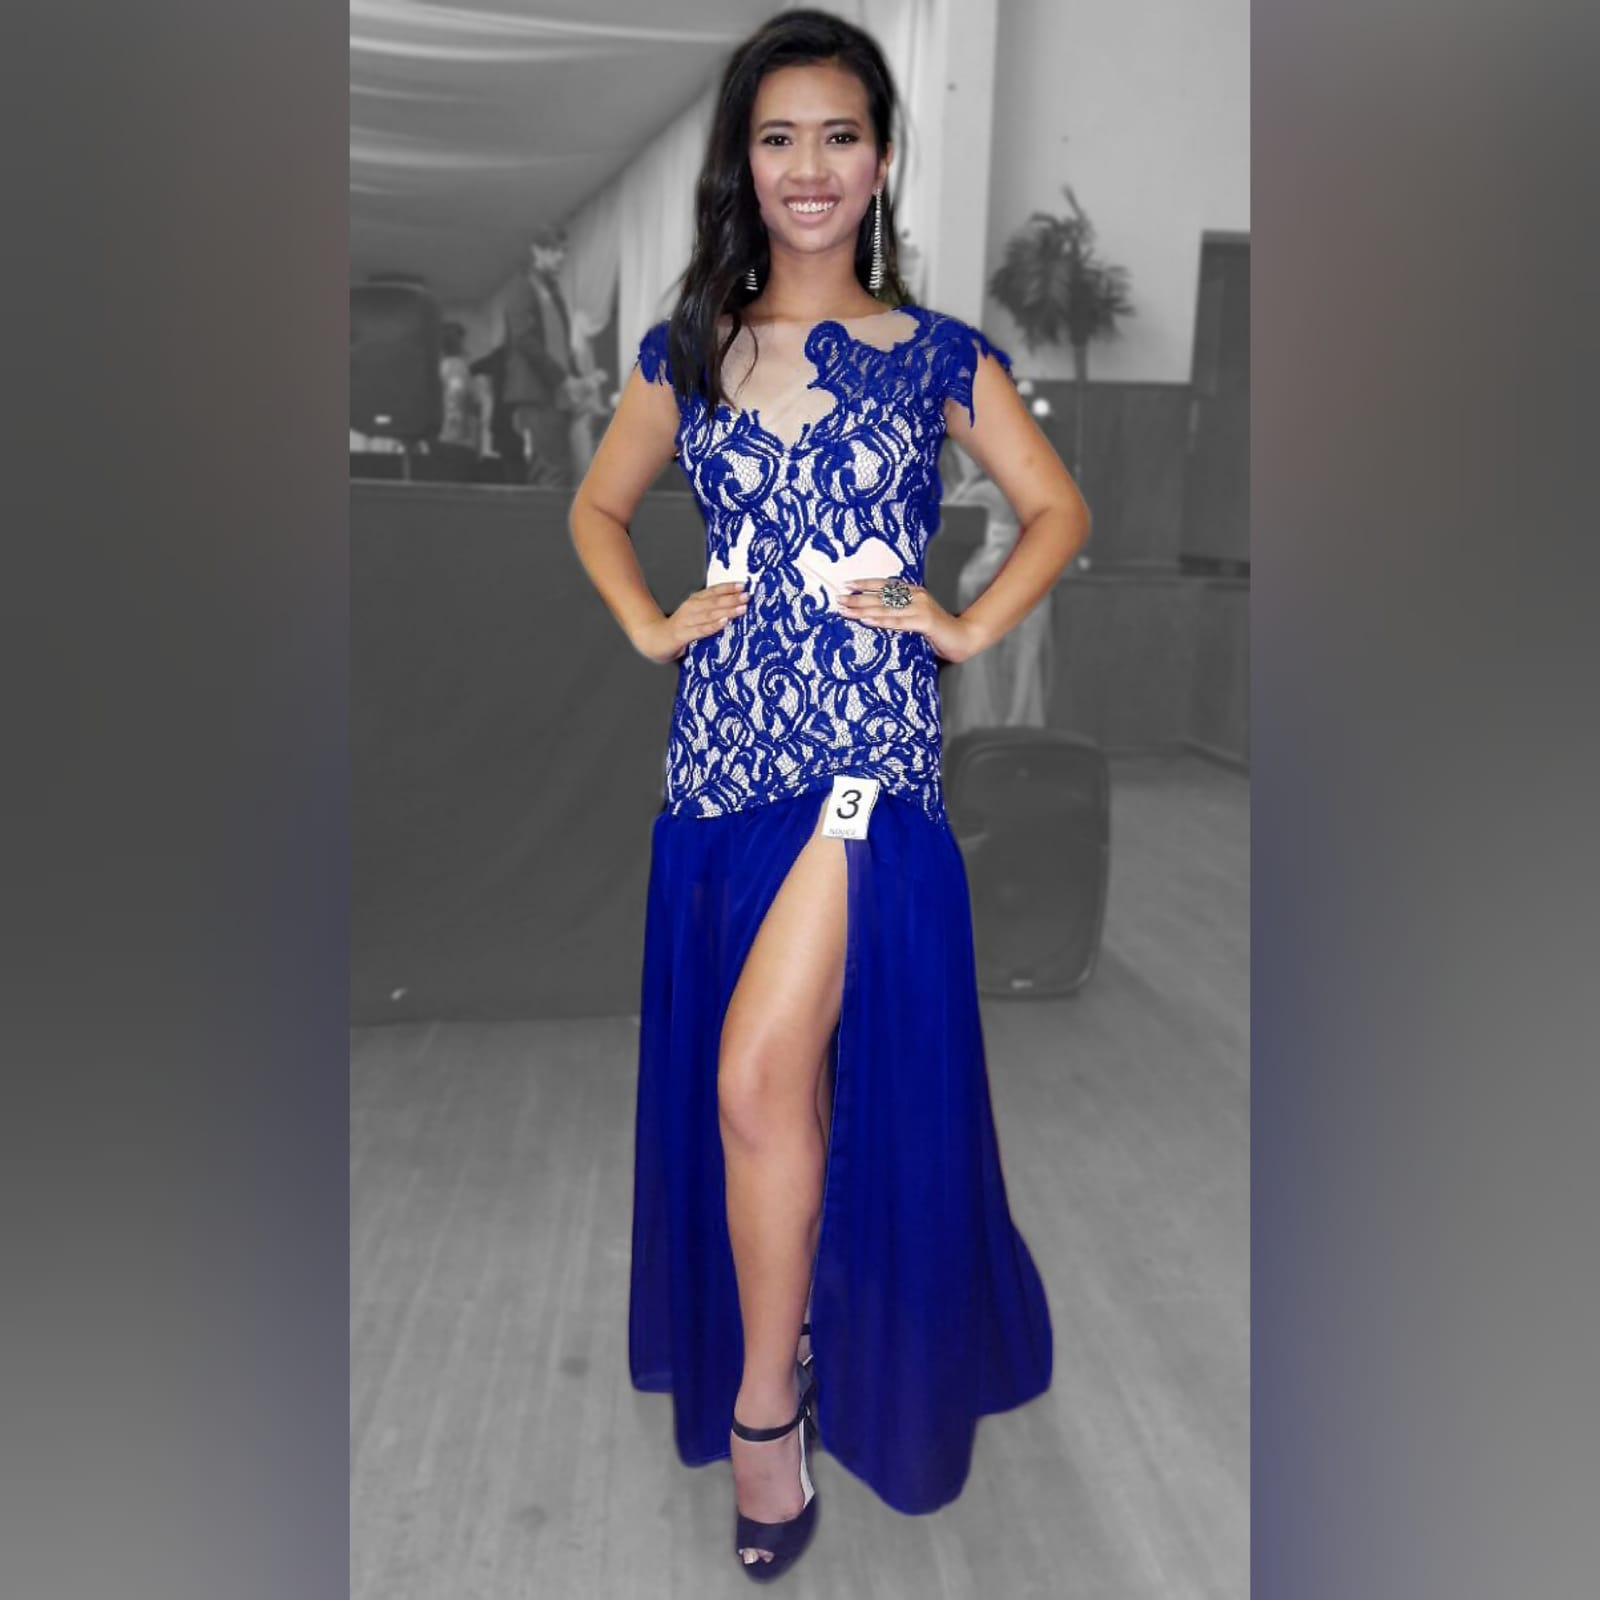 Royal blue pageant evening dress 4 royal blue pageant evening dress, with a lace bodice lined in nude, with a sheer gathered chiffon bottom with high slit, and a rounded open back.